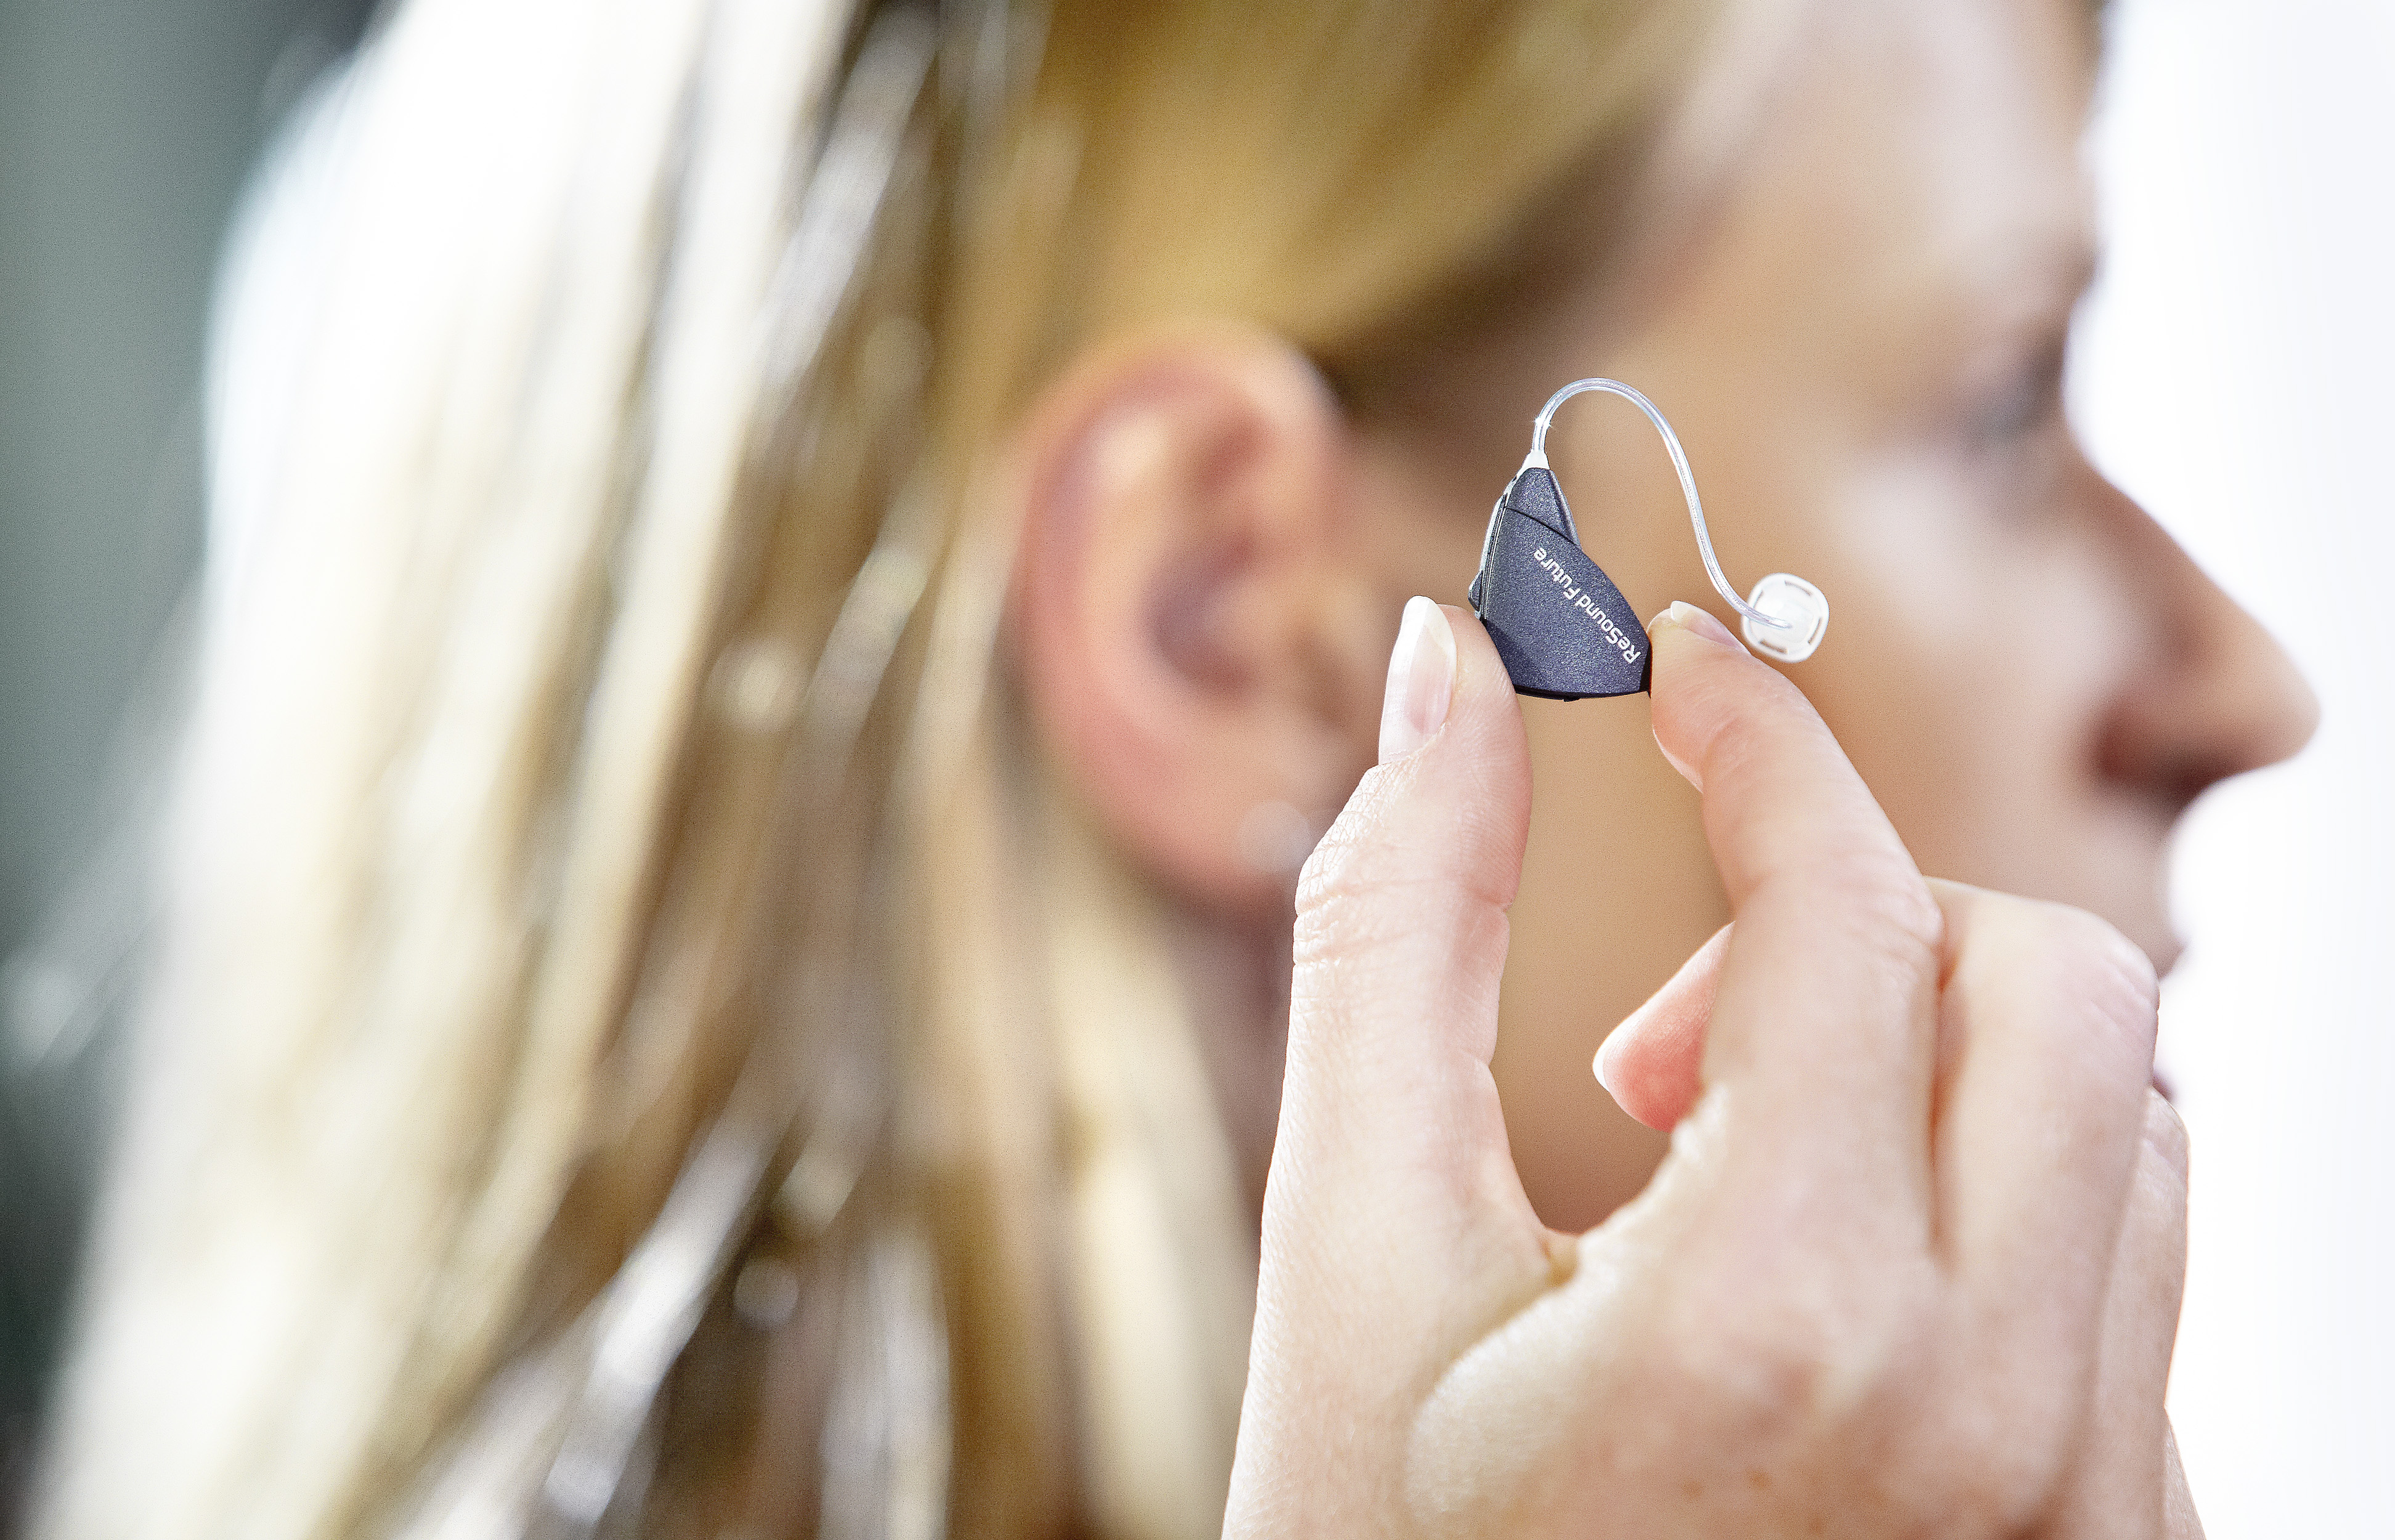 Some Expert Tips for Finding Free or Affordable Hearing Aids